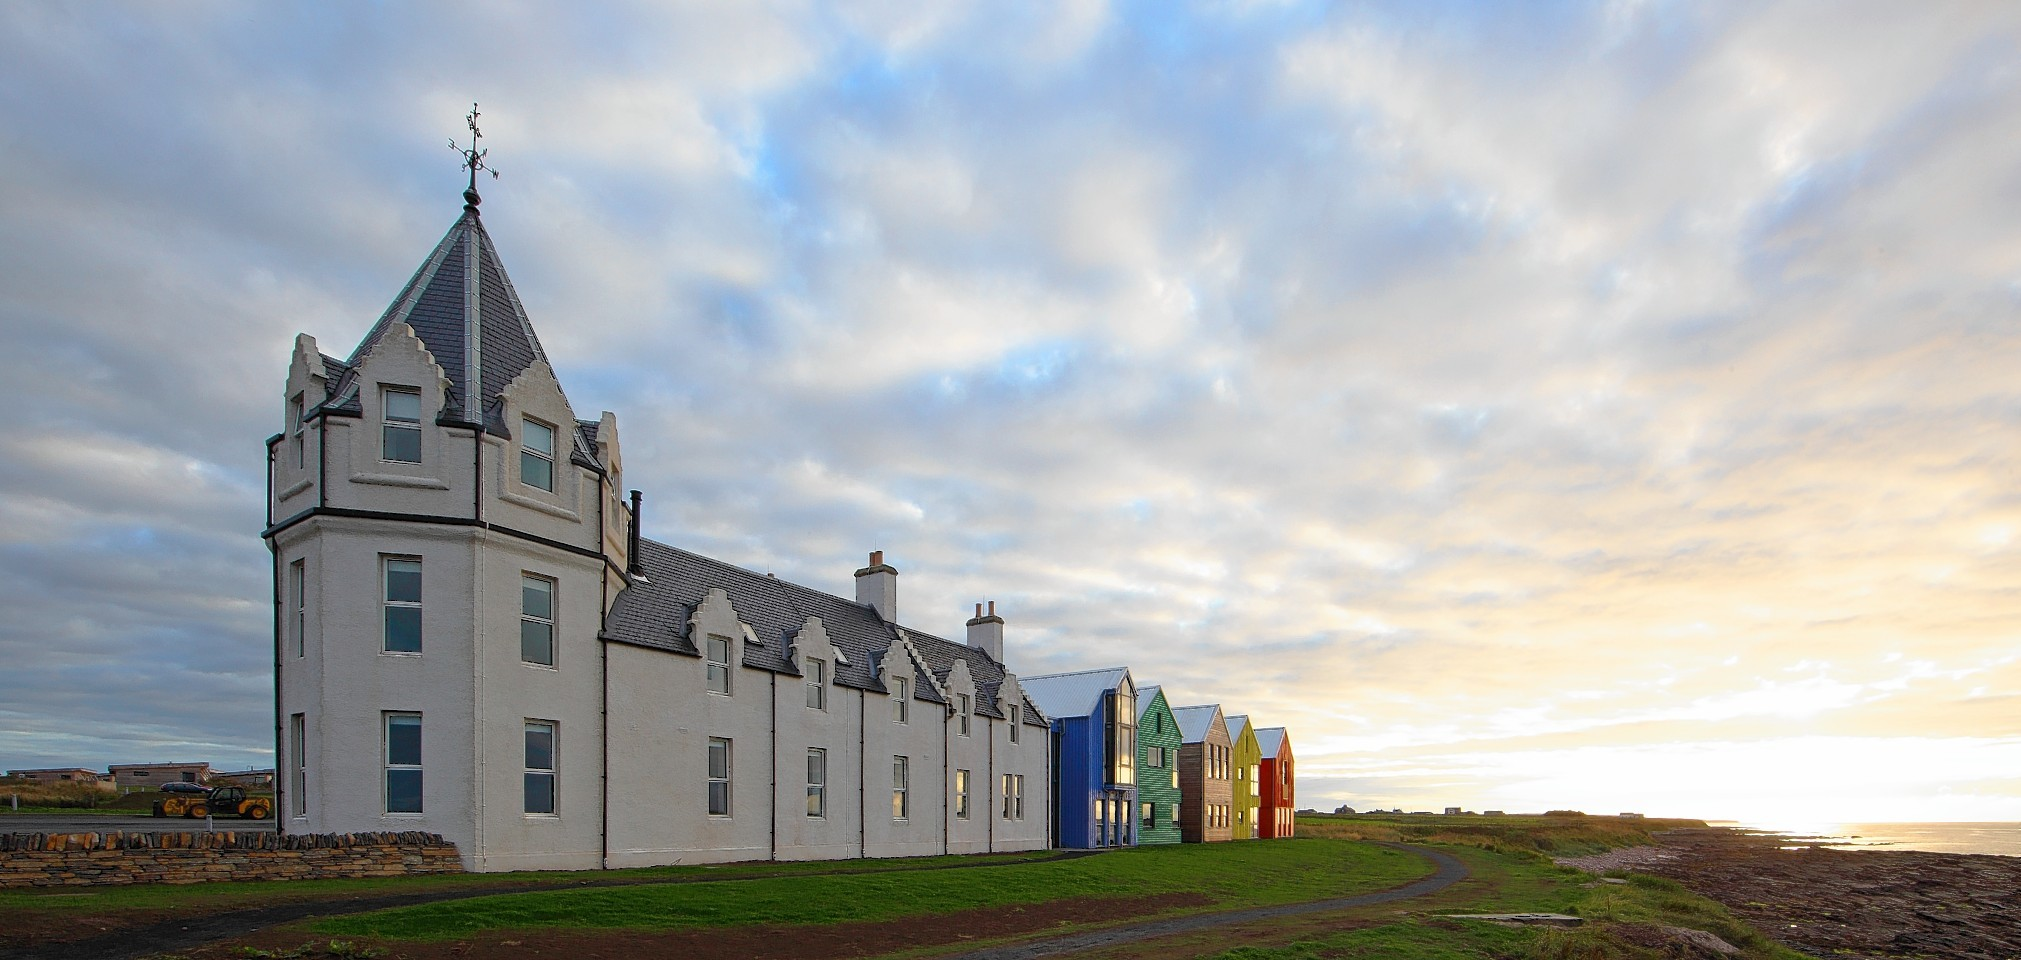 The plans for John O'Groats have been drawn up by Natural Retreats, which has already refurbished the John O'Groats Hotel.